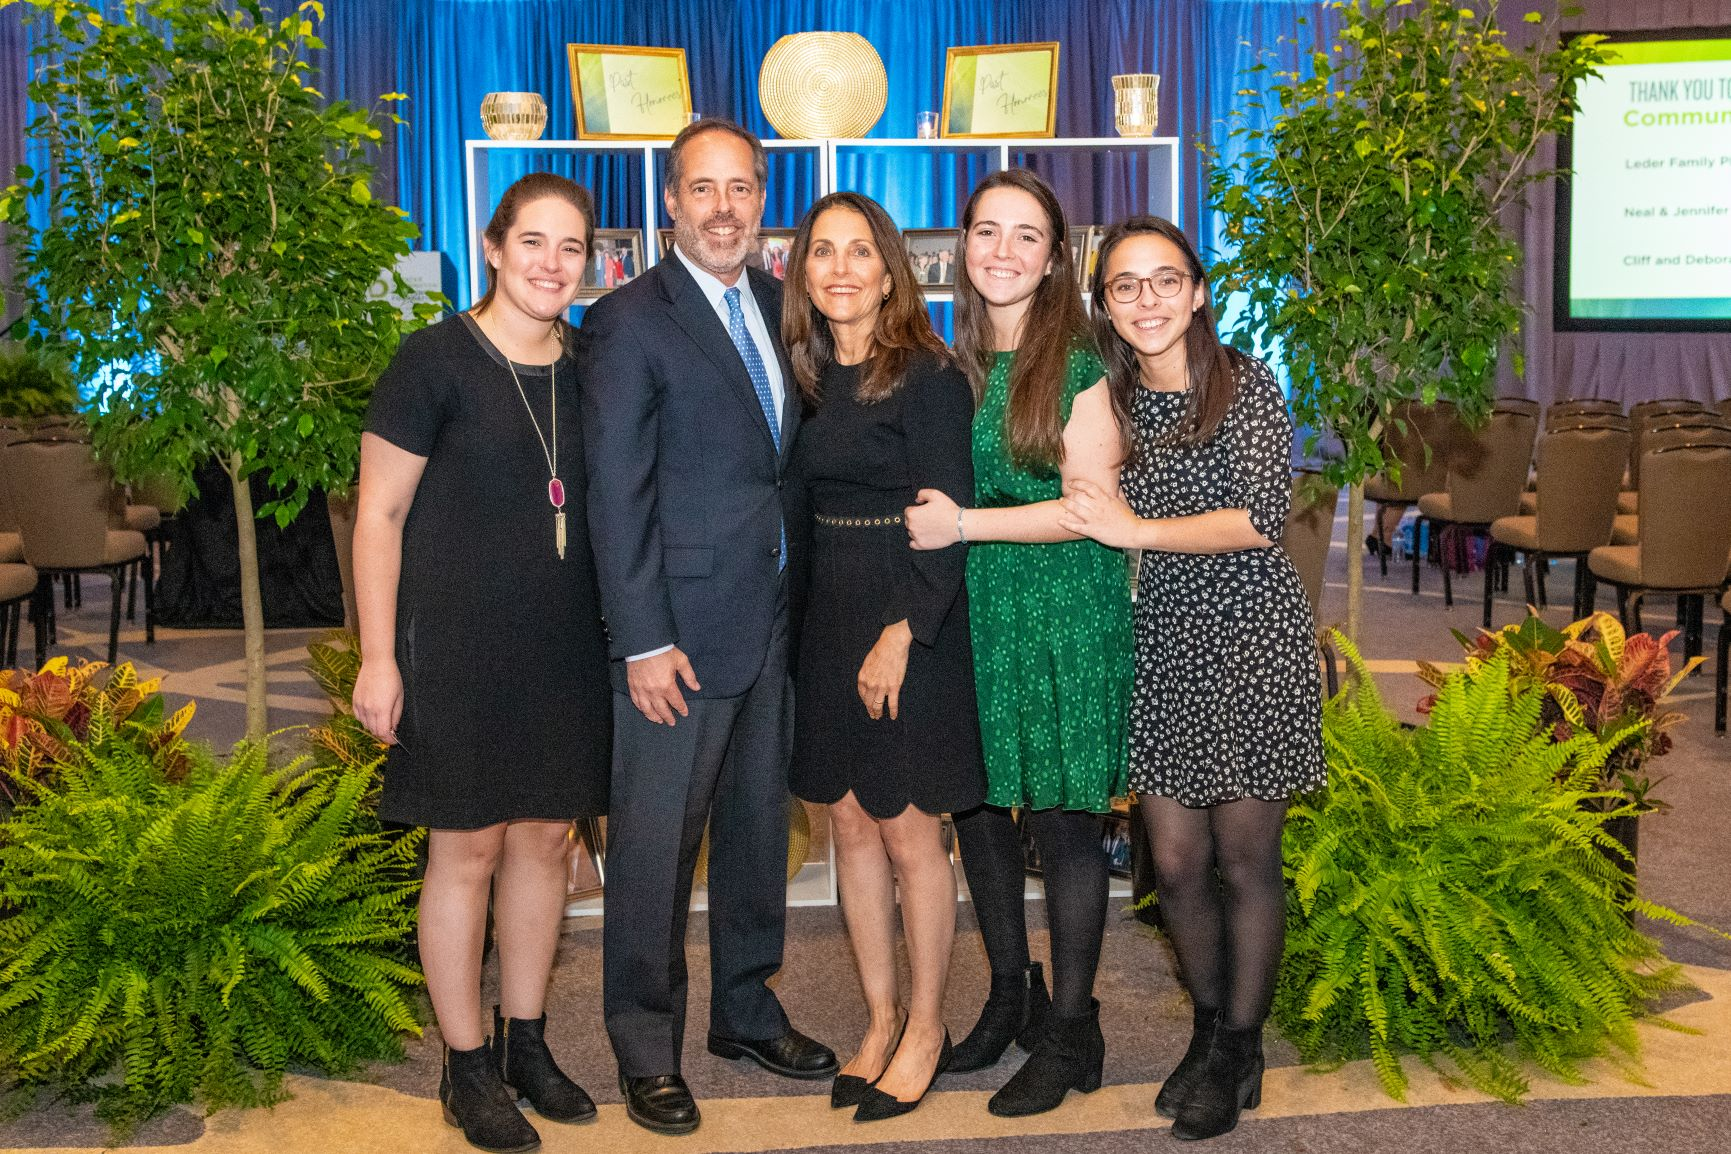 - Our 2018 Montgomery County Philanthropist of the Year, Linda Youngentob, and her family at the Celebration of Giving on November 1, 2018.